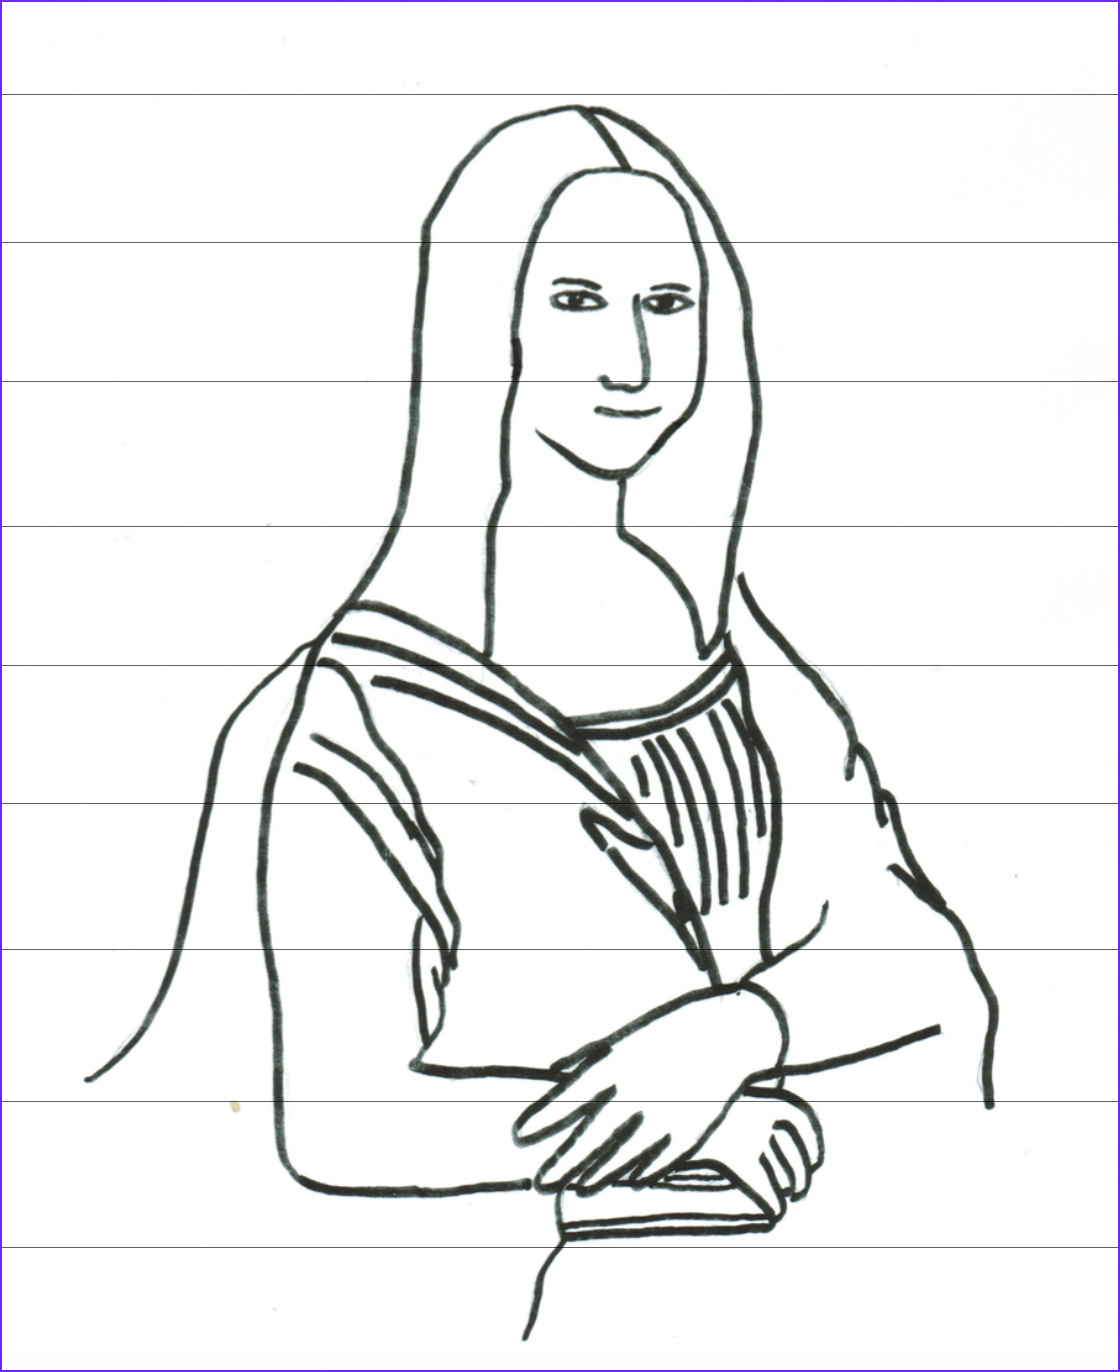 Mona Lisa Coloring Sheet Unique Images Great Artist Coloring Pages Half A Hundred Acre Wood